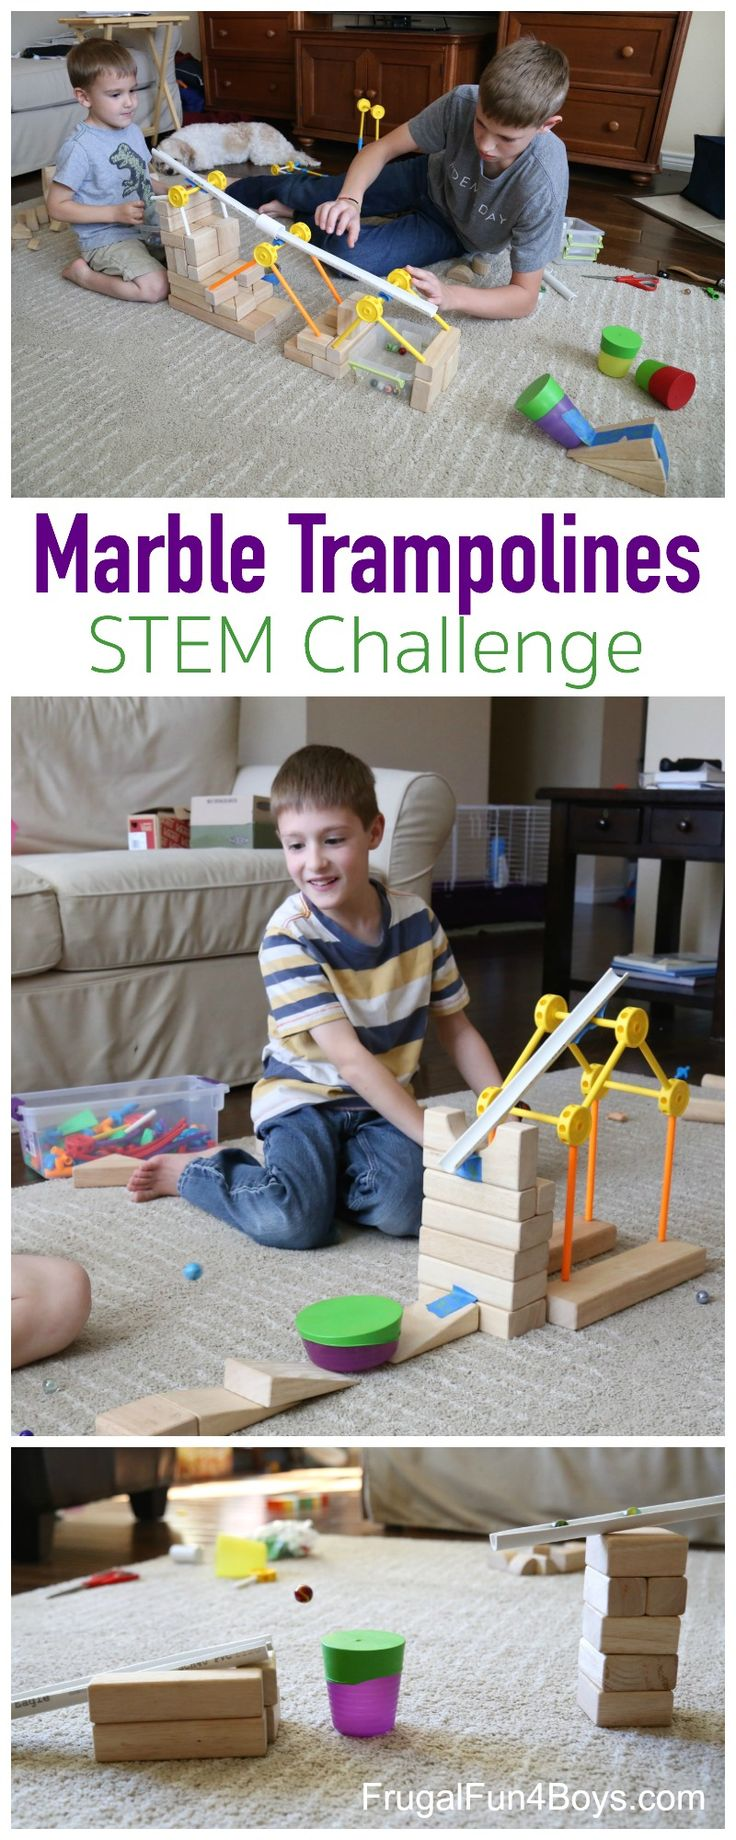 Marble Trampolines!  A Fun Engineering Challenge for Kids